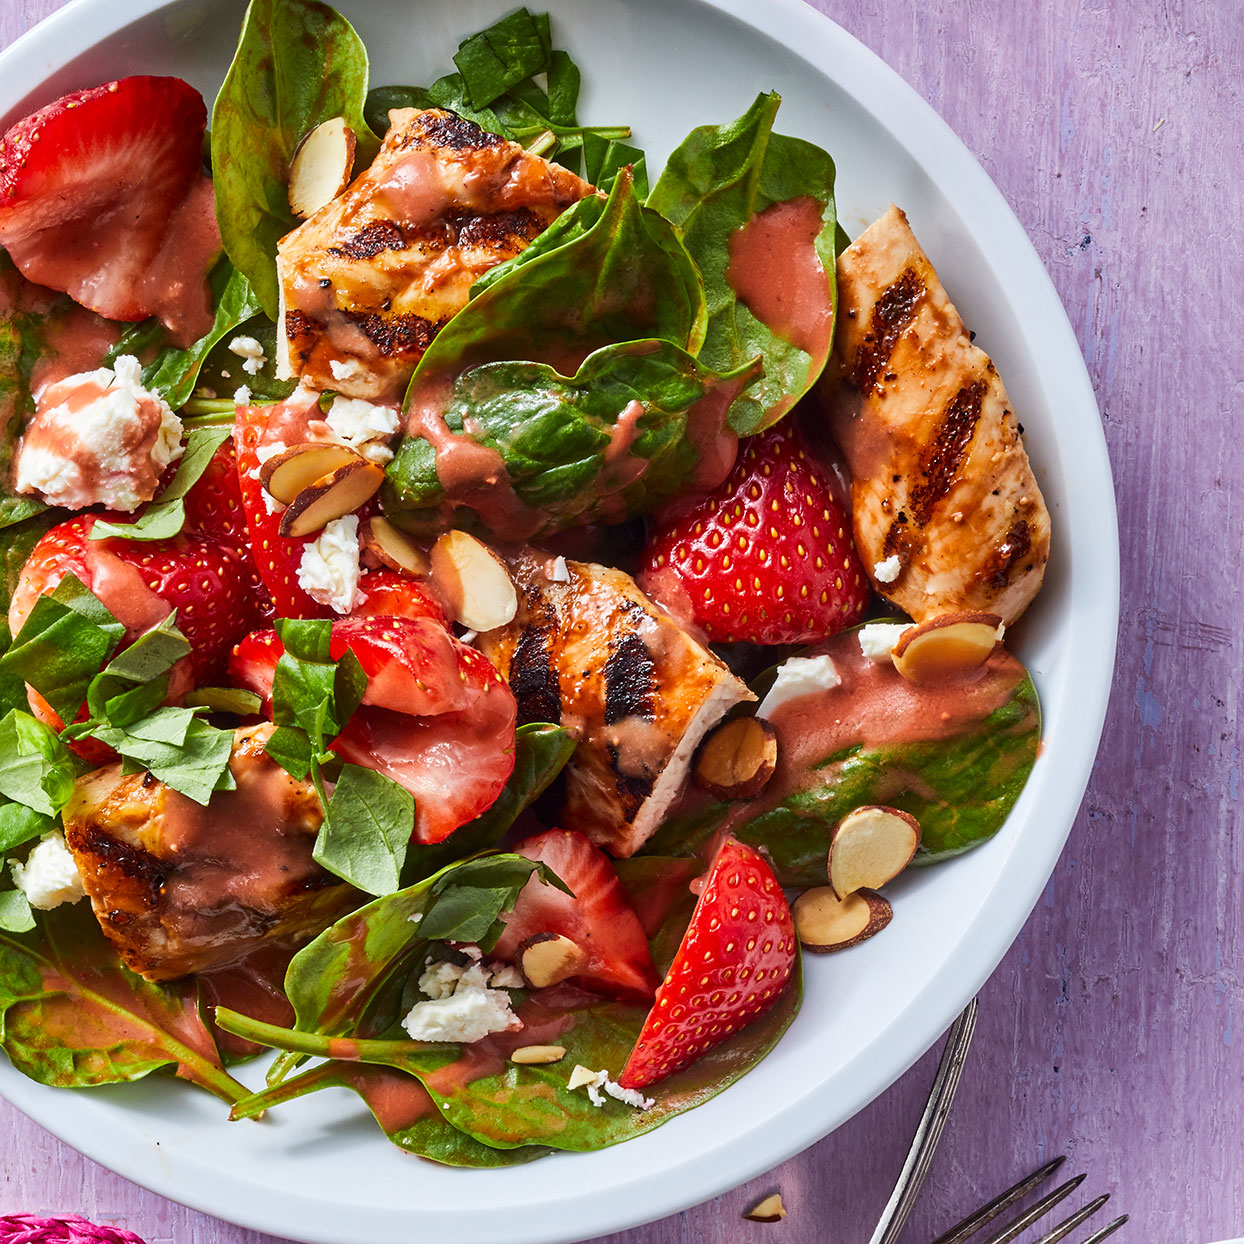 A quick blender vinaigrette does double duty as dressing for this strawberry spinach salad and, with the addition of ketchup and strawberry preserves, as a barbecue sauce for the tenders. Source: EatingWell Magazine, June 2020